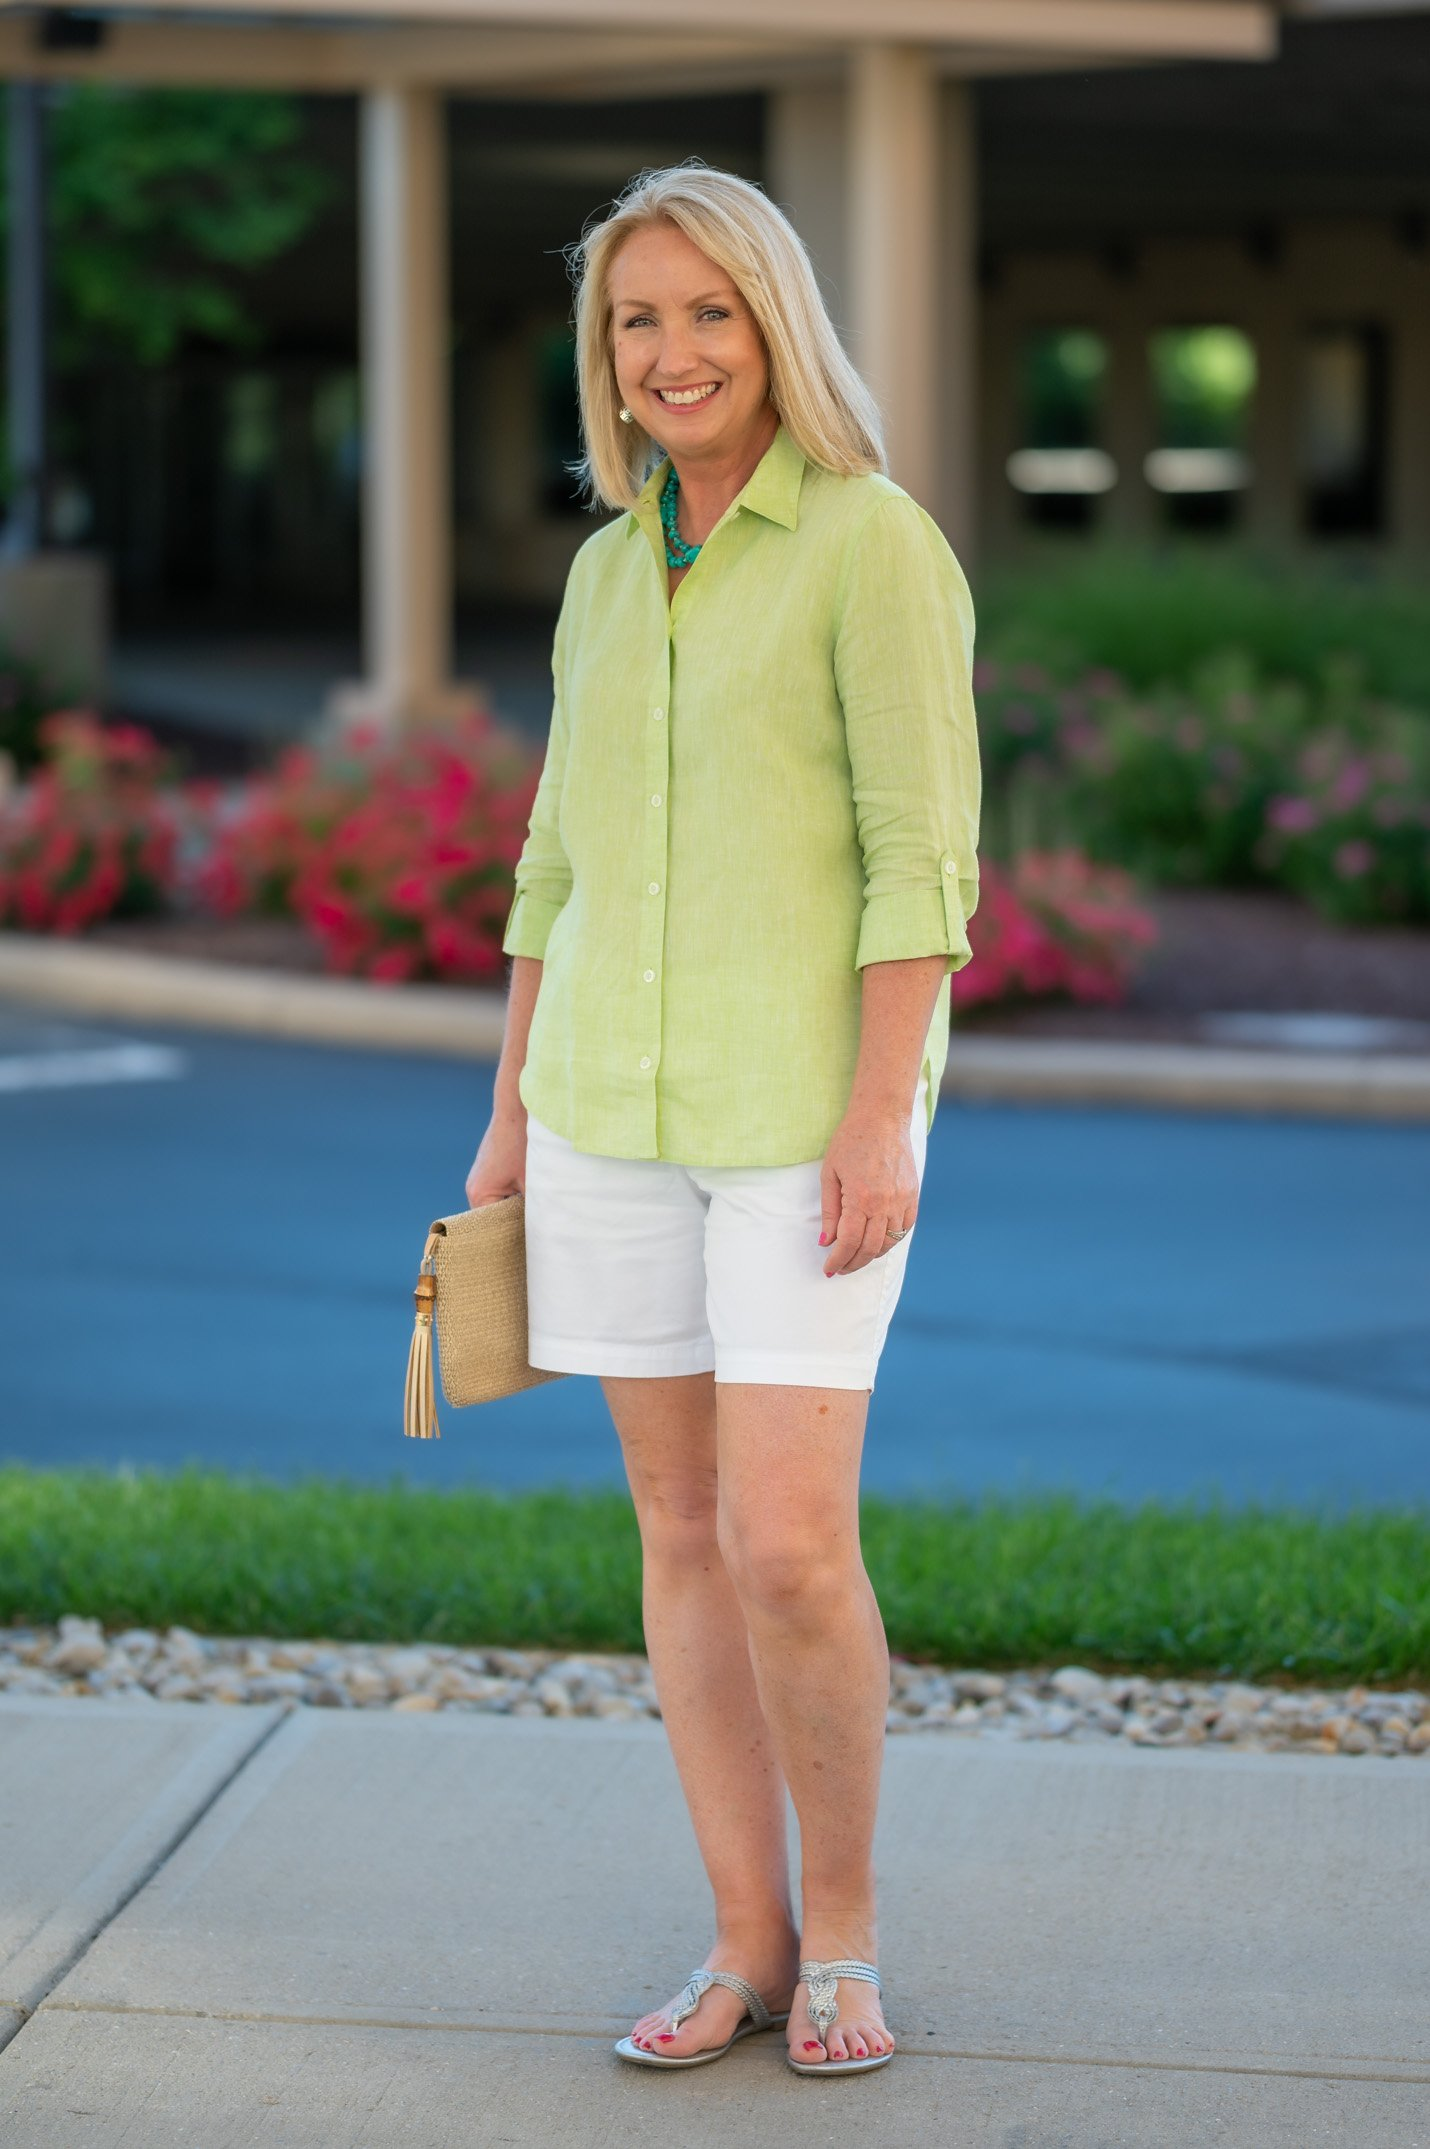 Linen Shirt and White Shorts